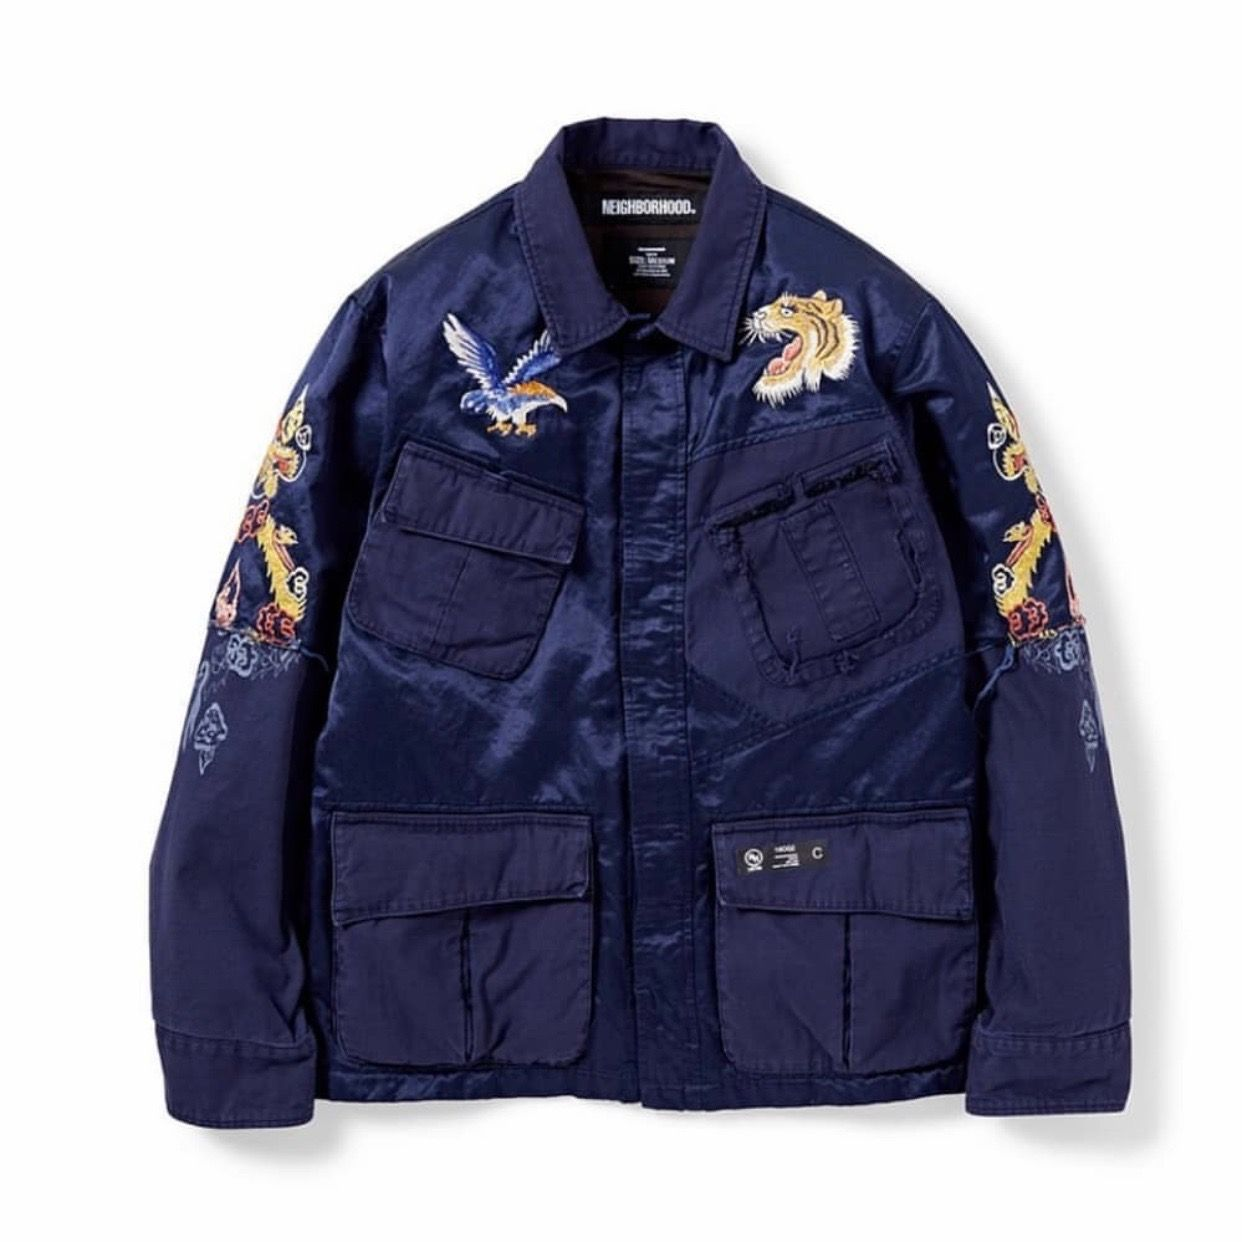 Pin By 67 Til Infinity On Ralph Lauren Patchwork Palace Online Store Highsnobiety Style [ 1242 x 1242 Pixel ]